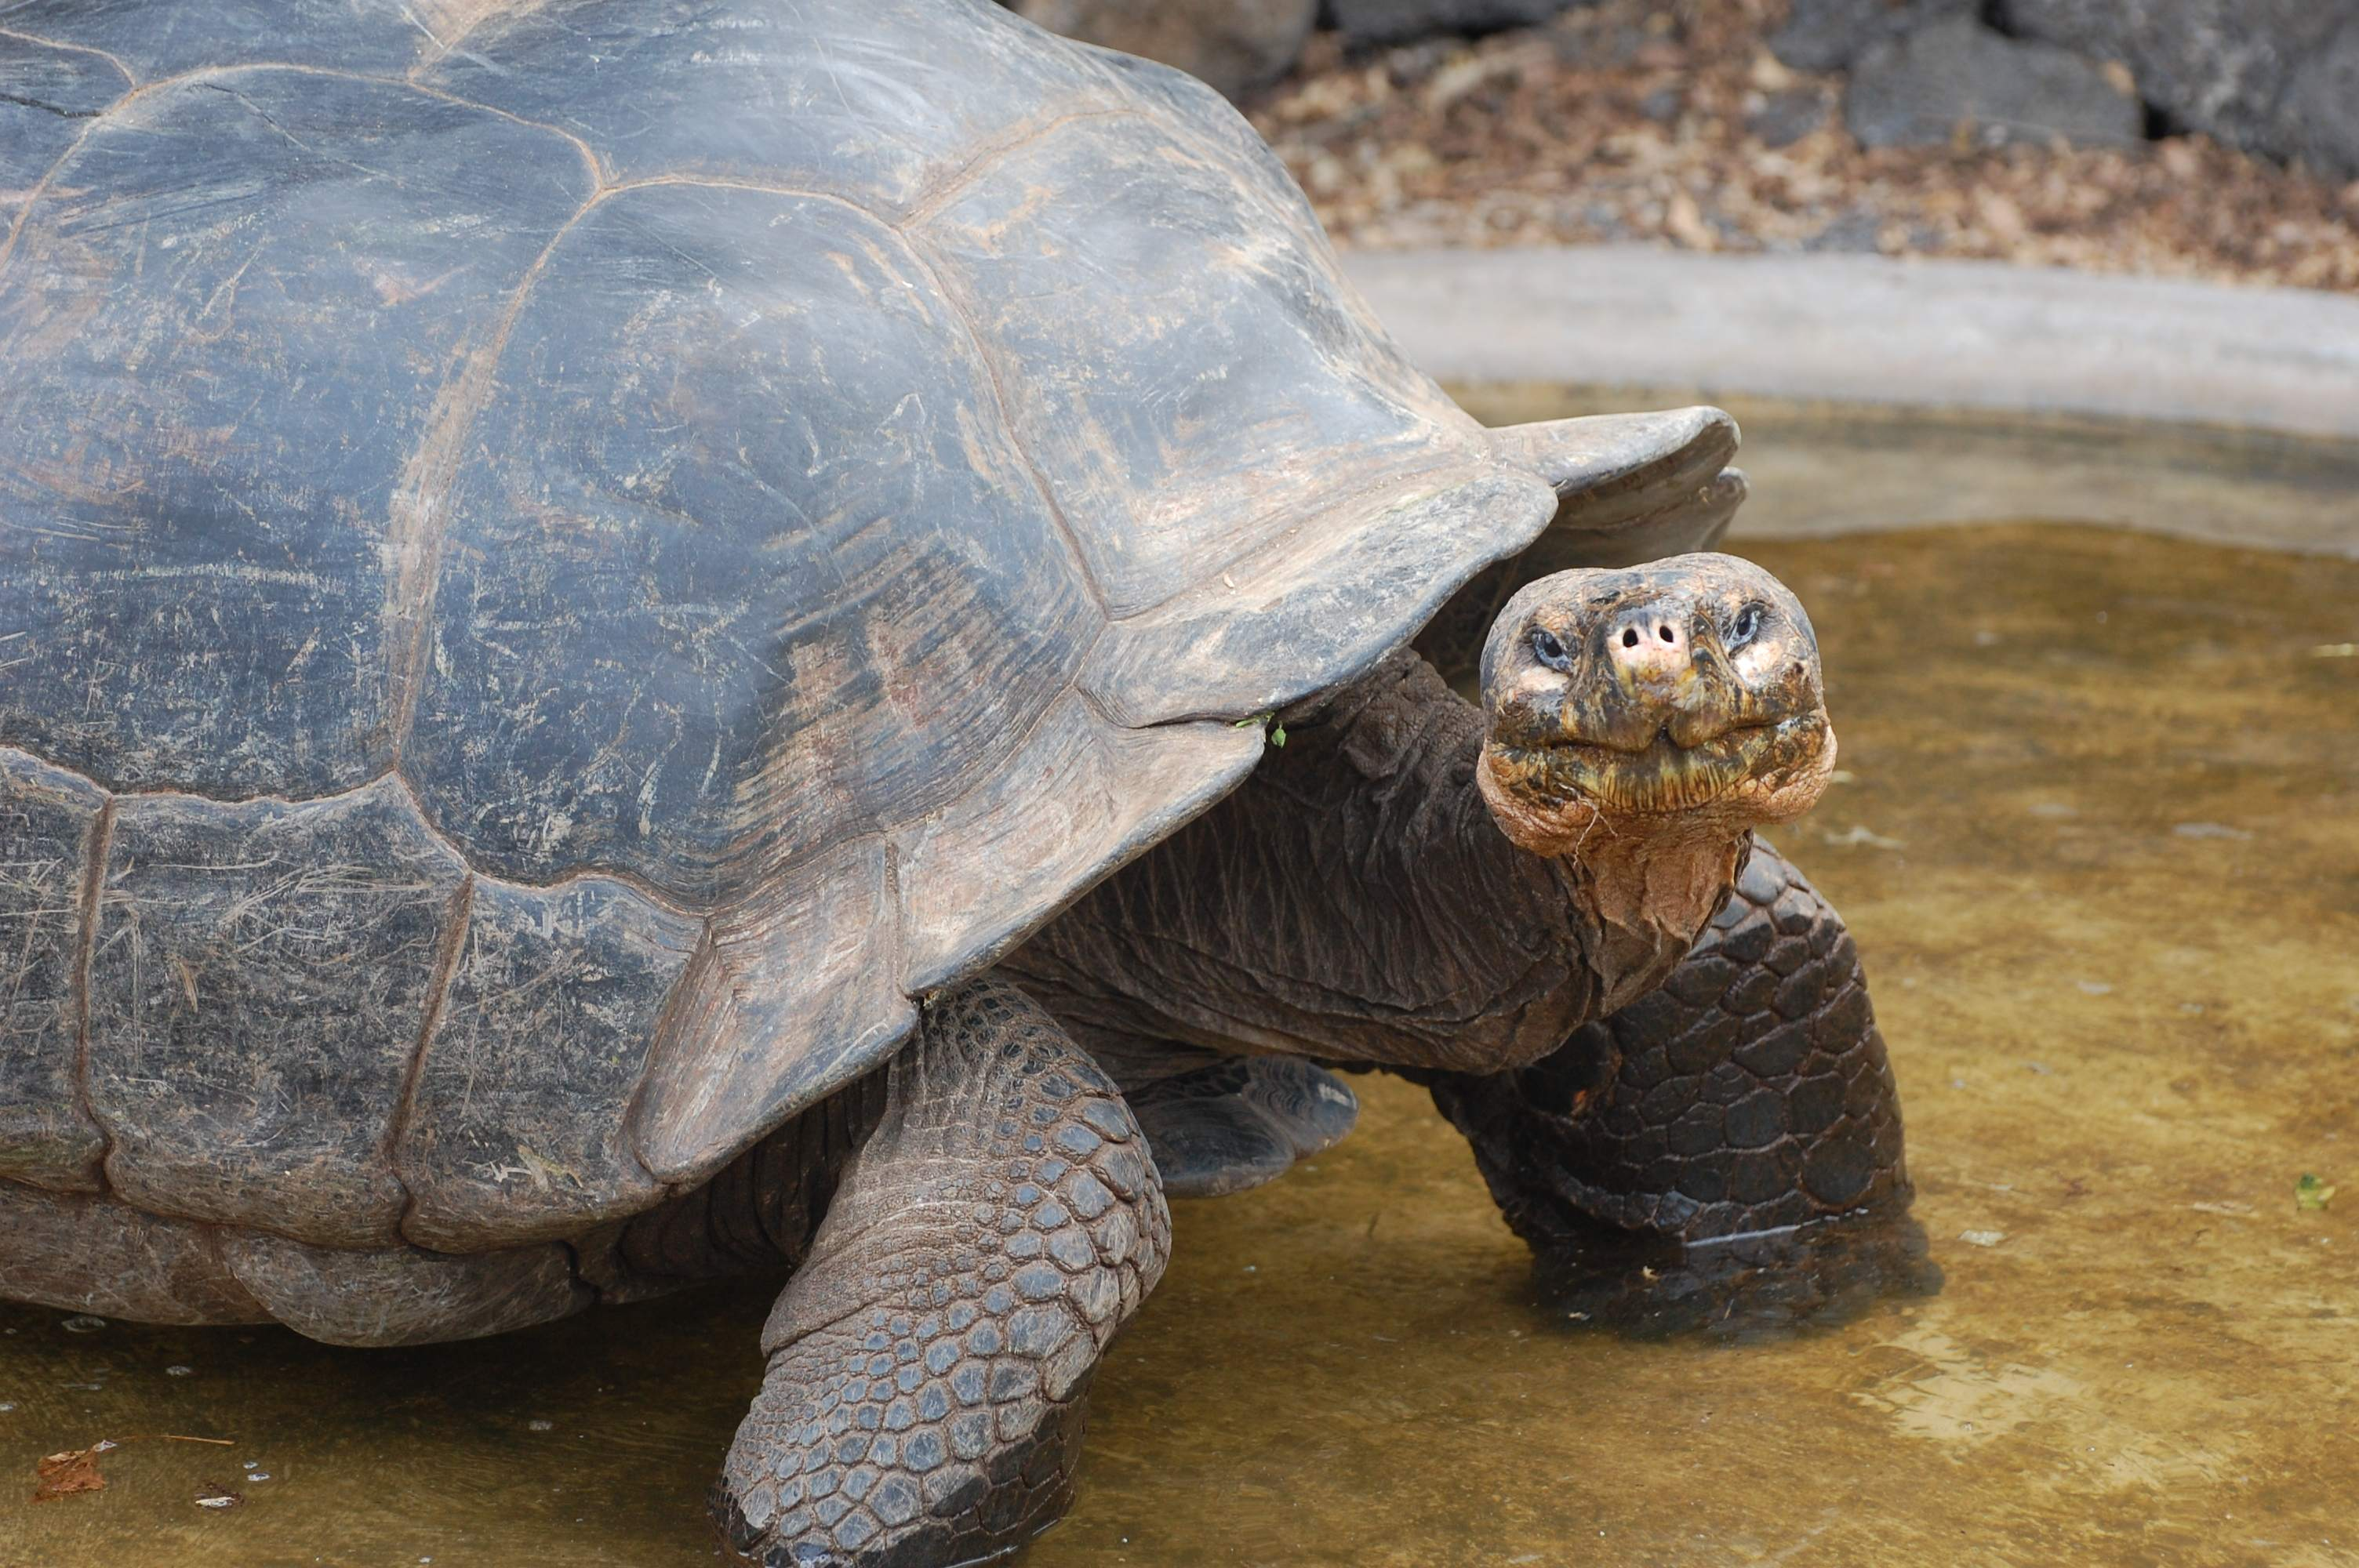 This tortoise knows how to pose for the cameras.